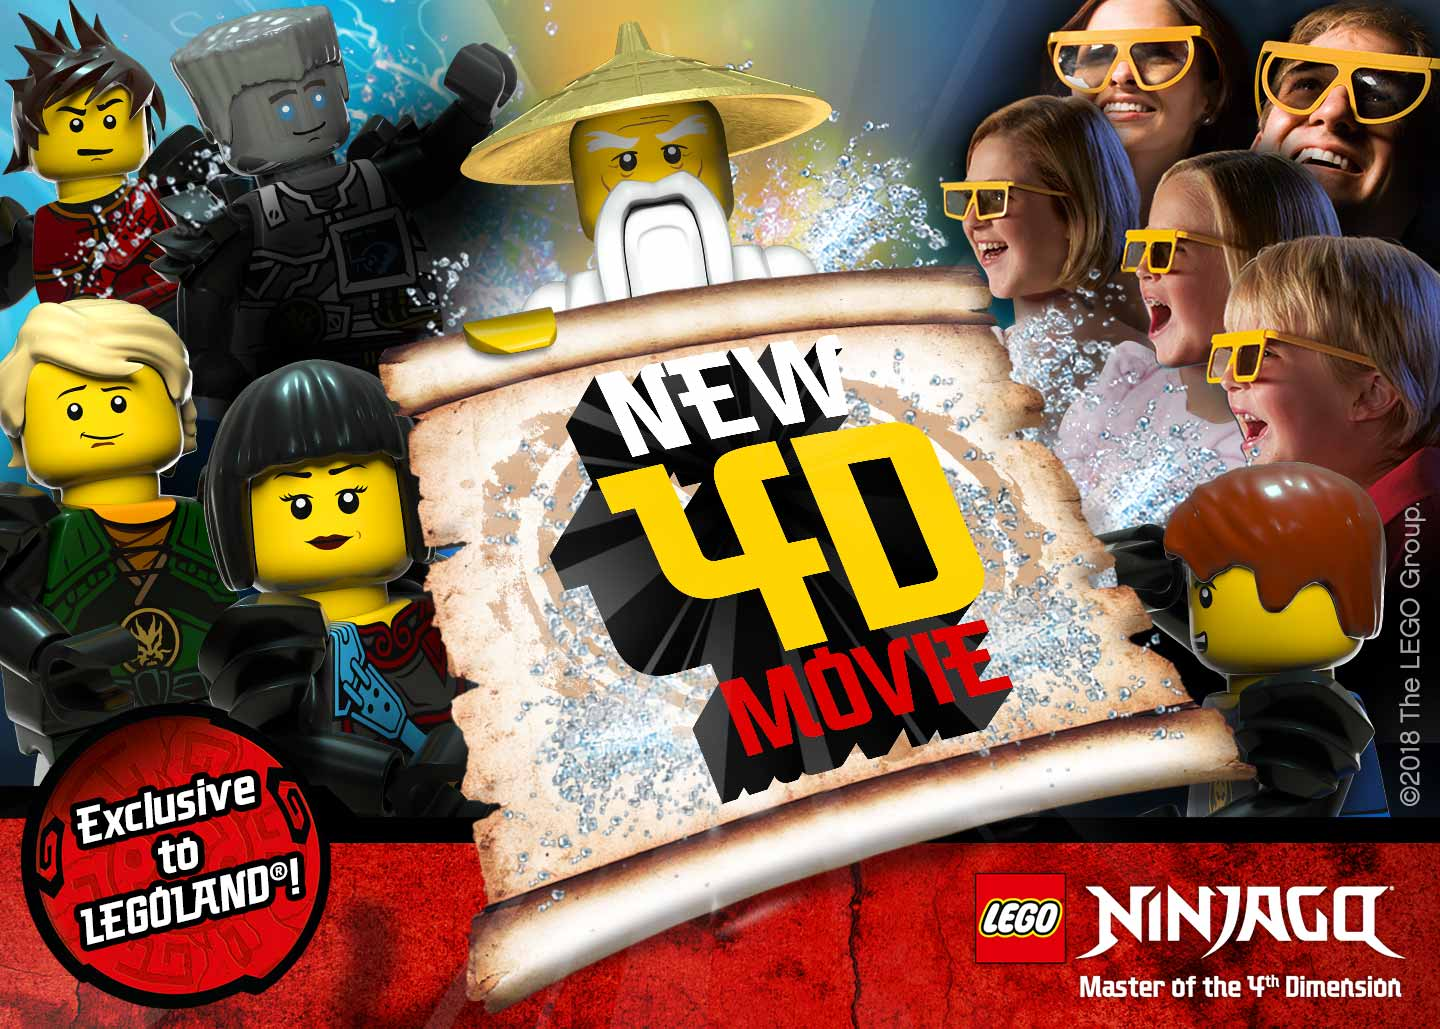 New Ninjago 4D movie coming to LEGOLAND Windsor Resort in 2018